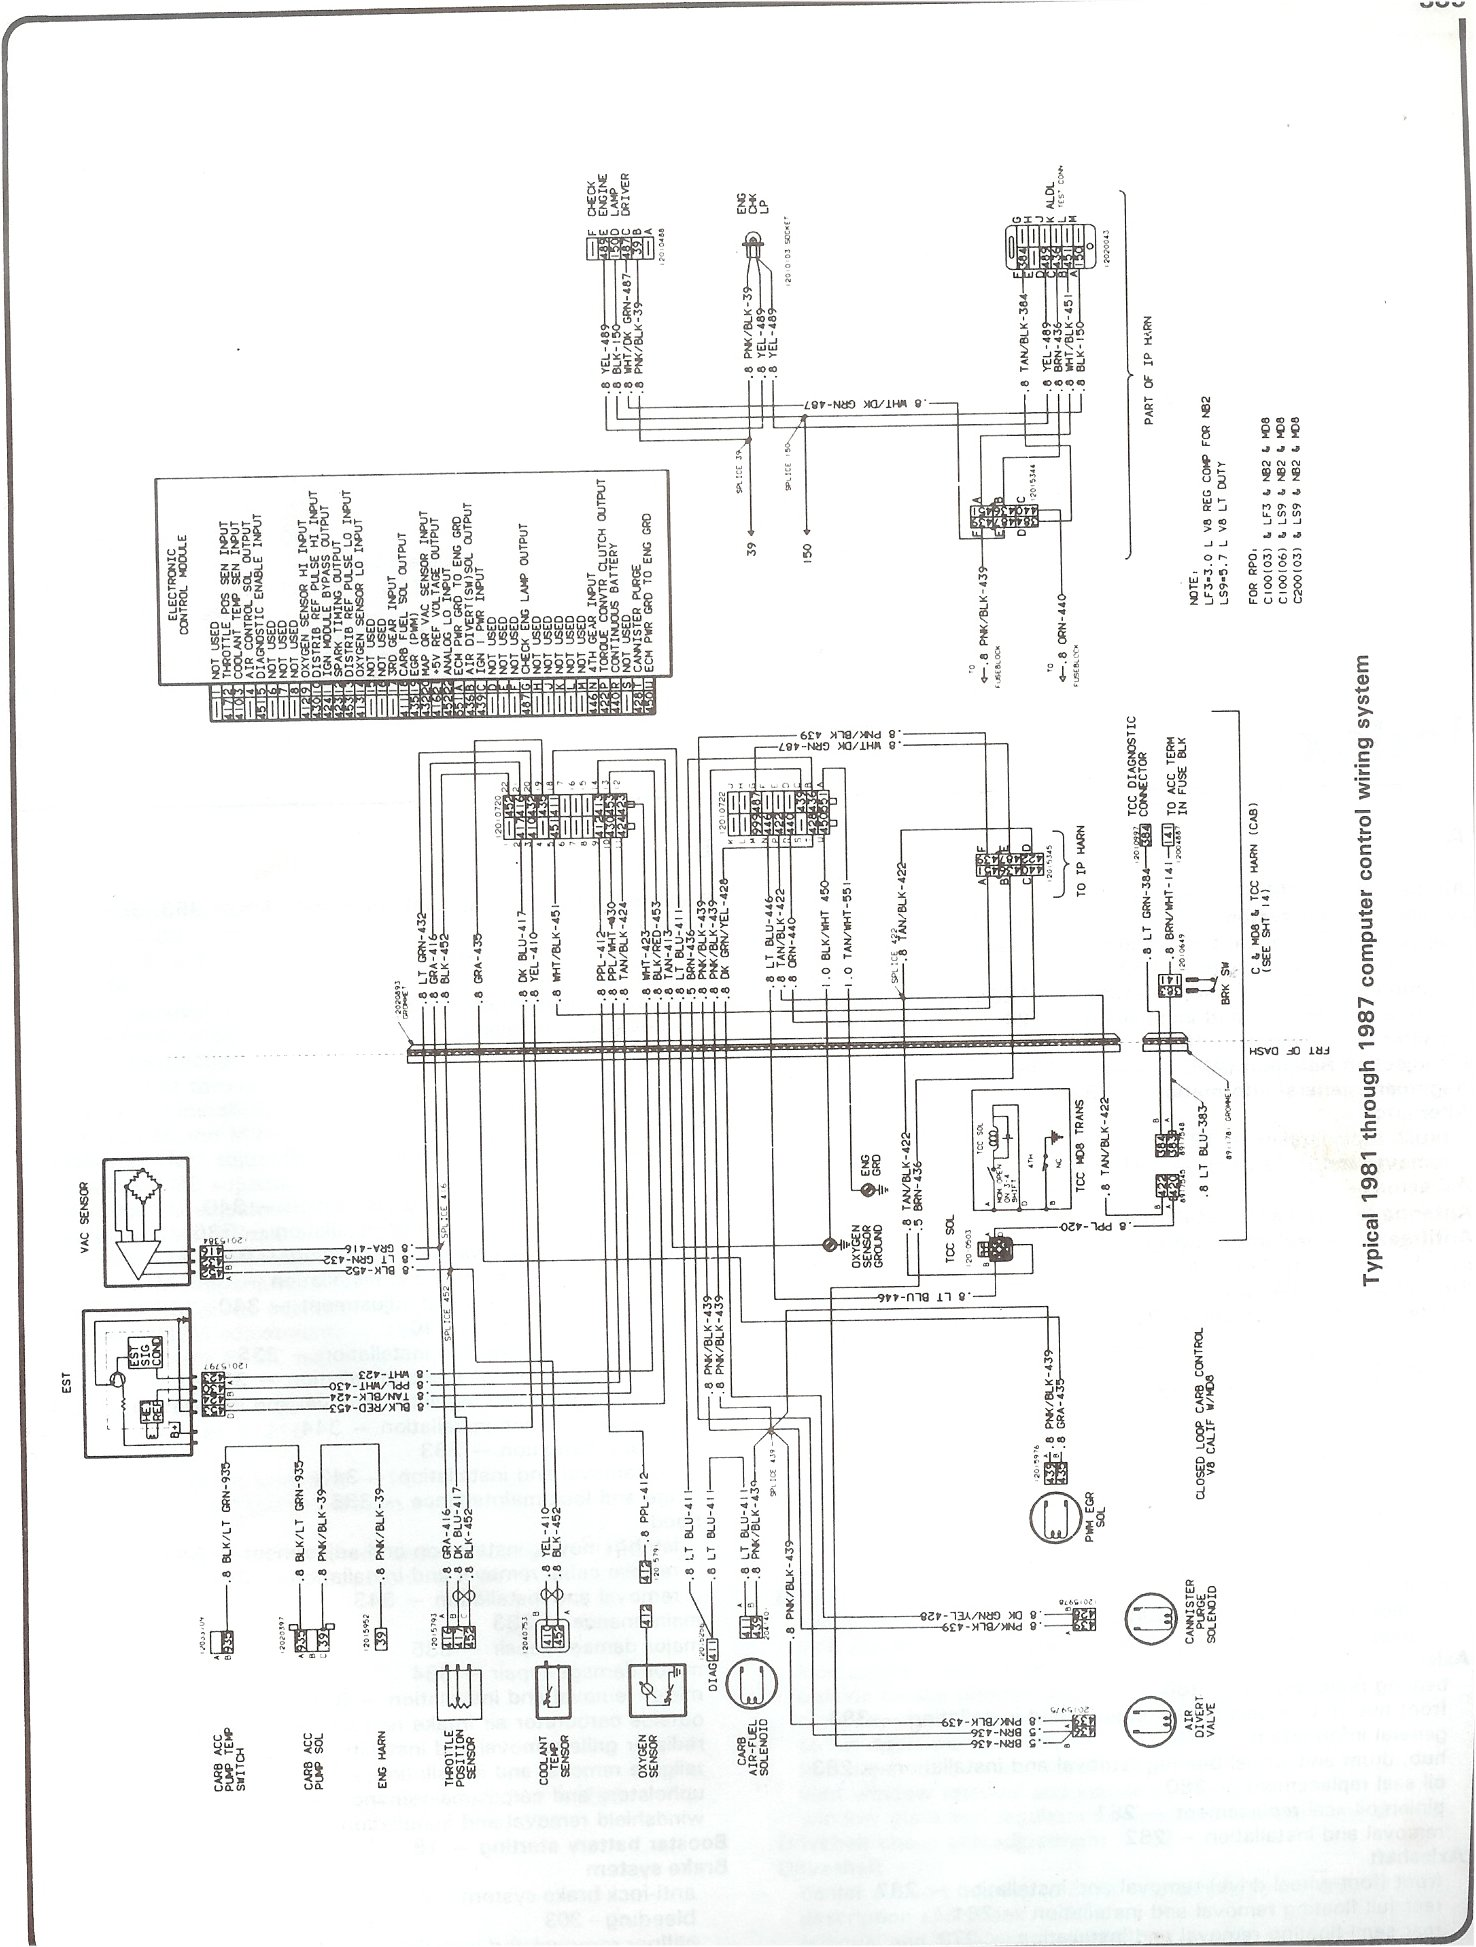 81 87_computer_control_wiring complete 73 87 wiring diagrams 1982 chevy radio wiring diagram at virtualis.co